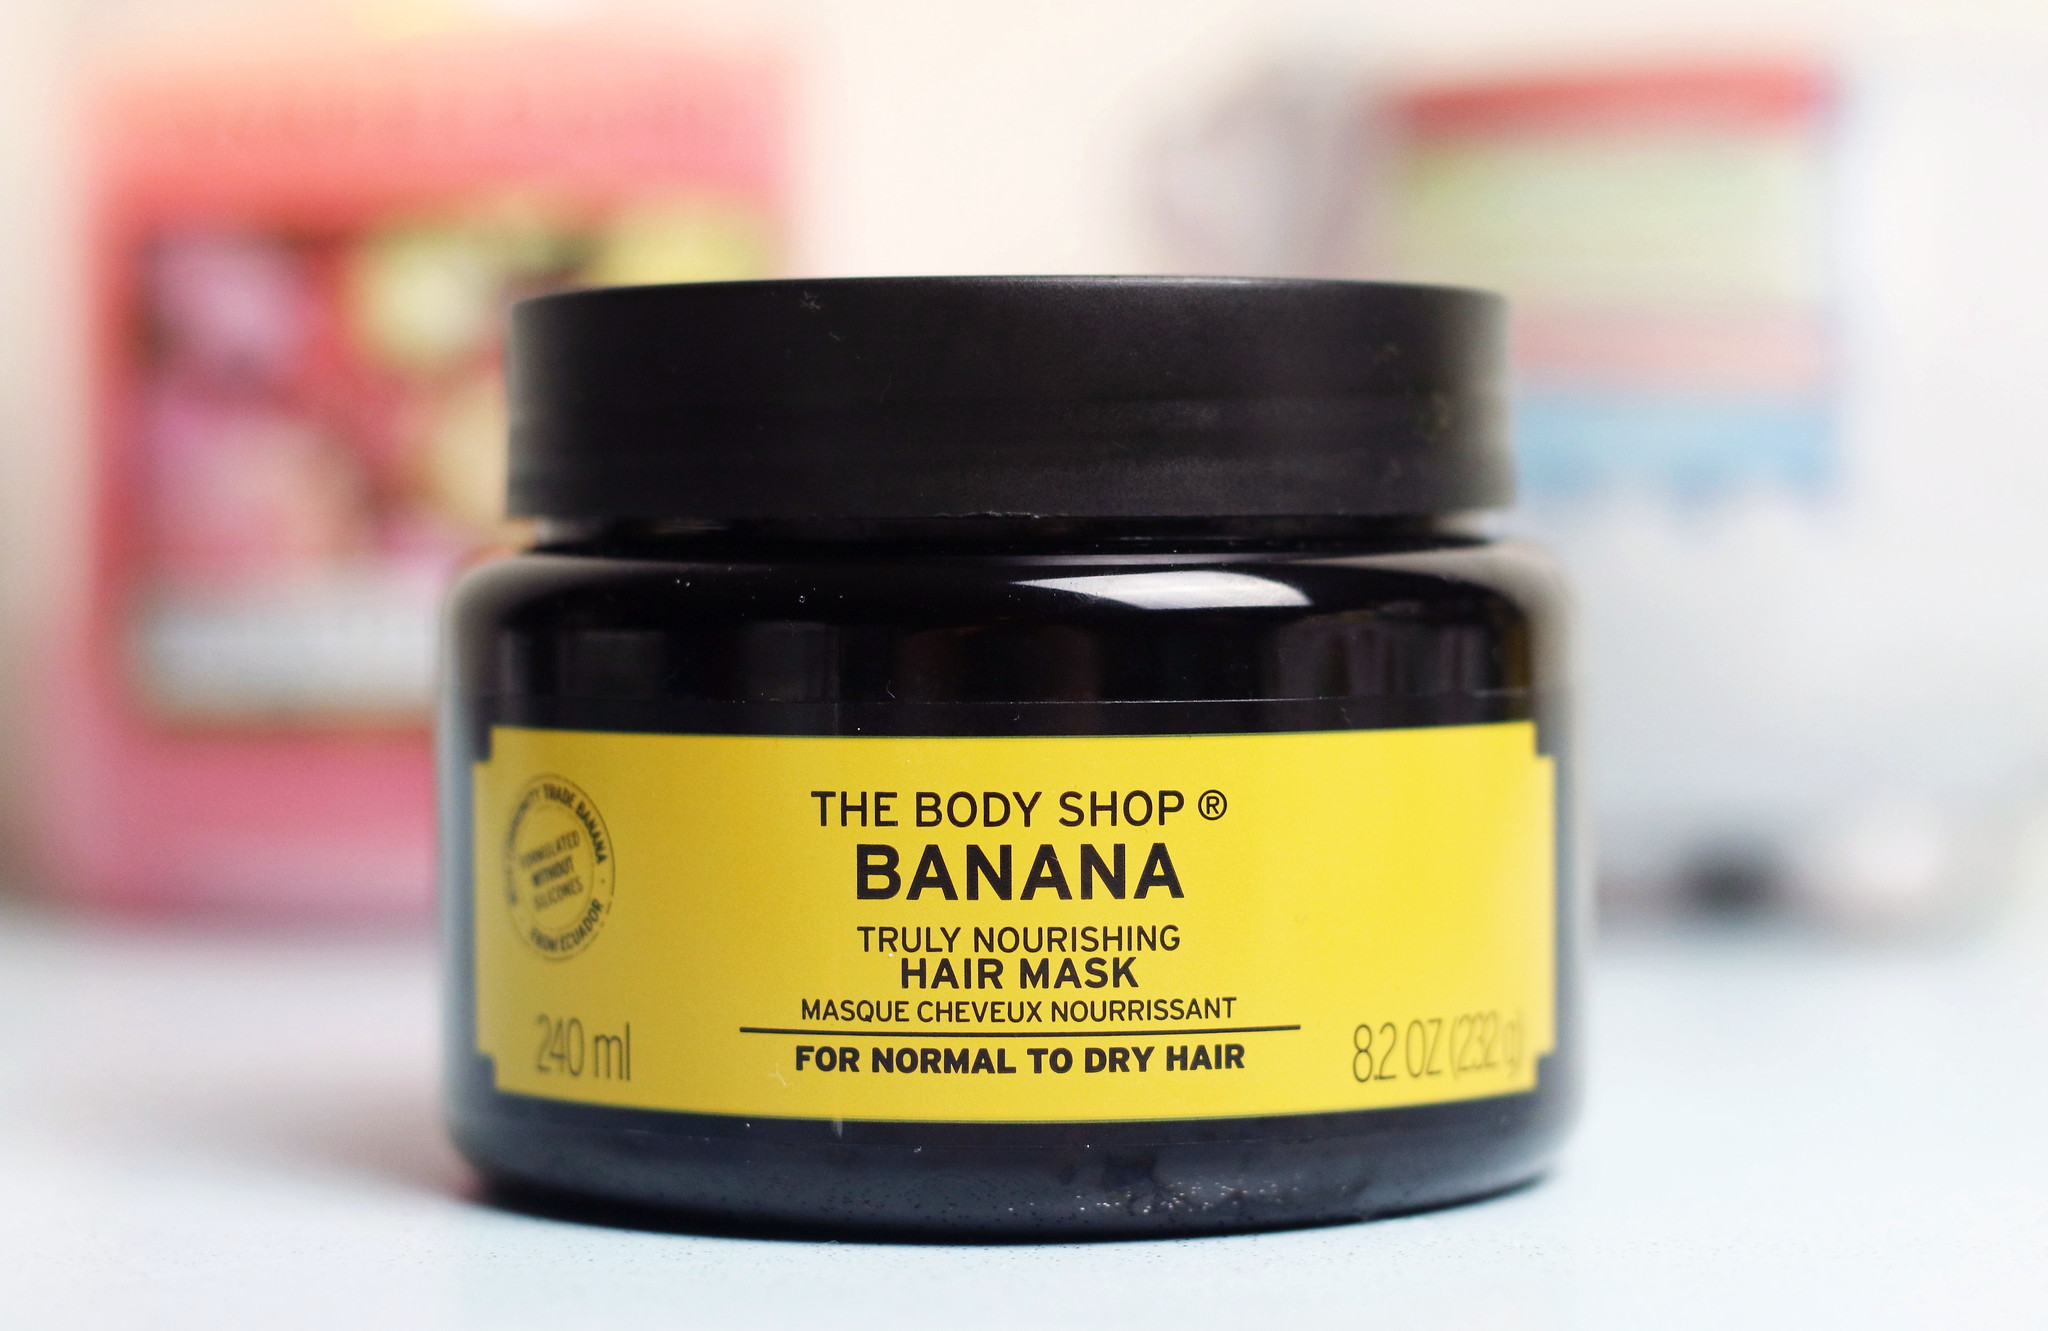 The Body Shop Banana Hair Mask